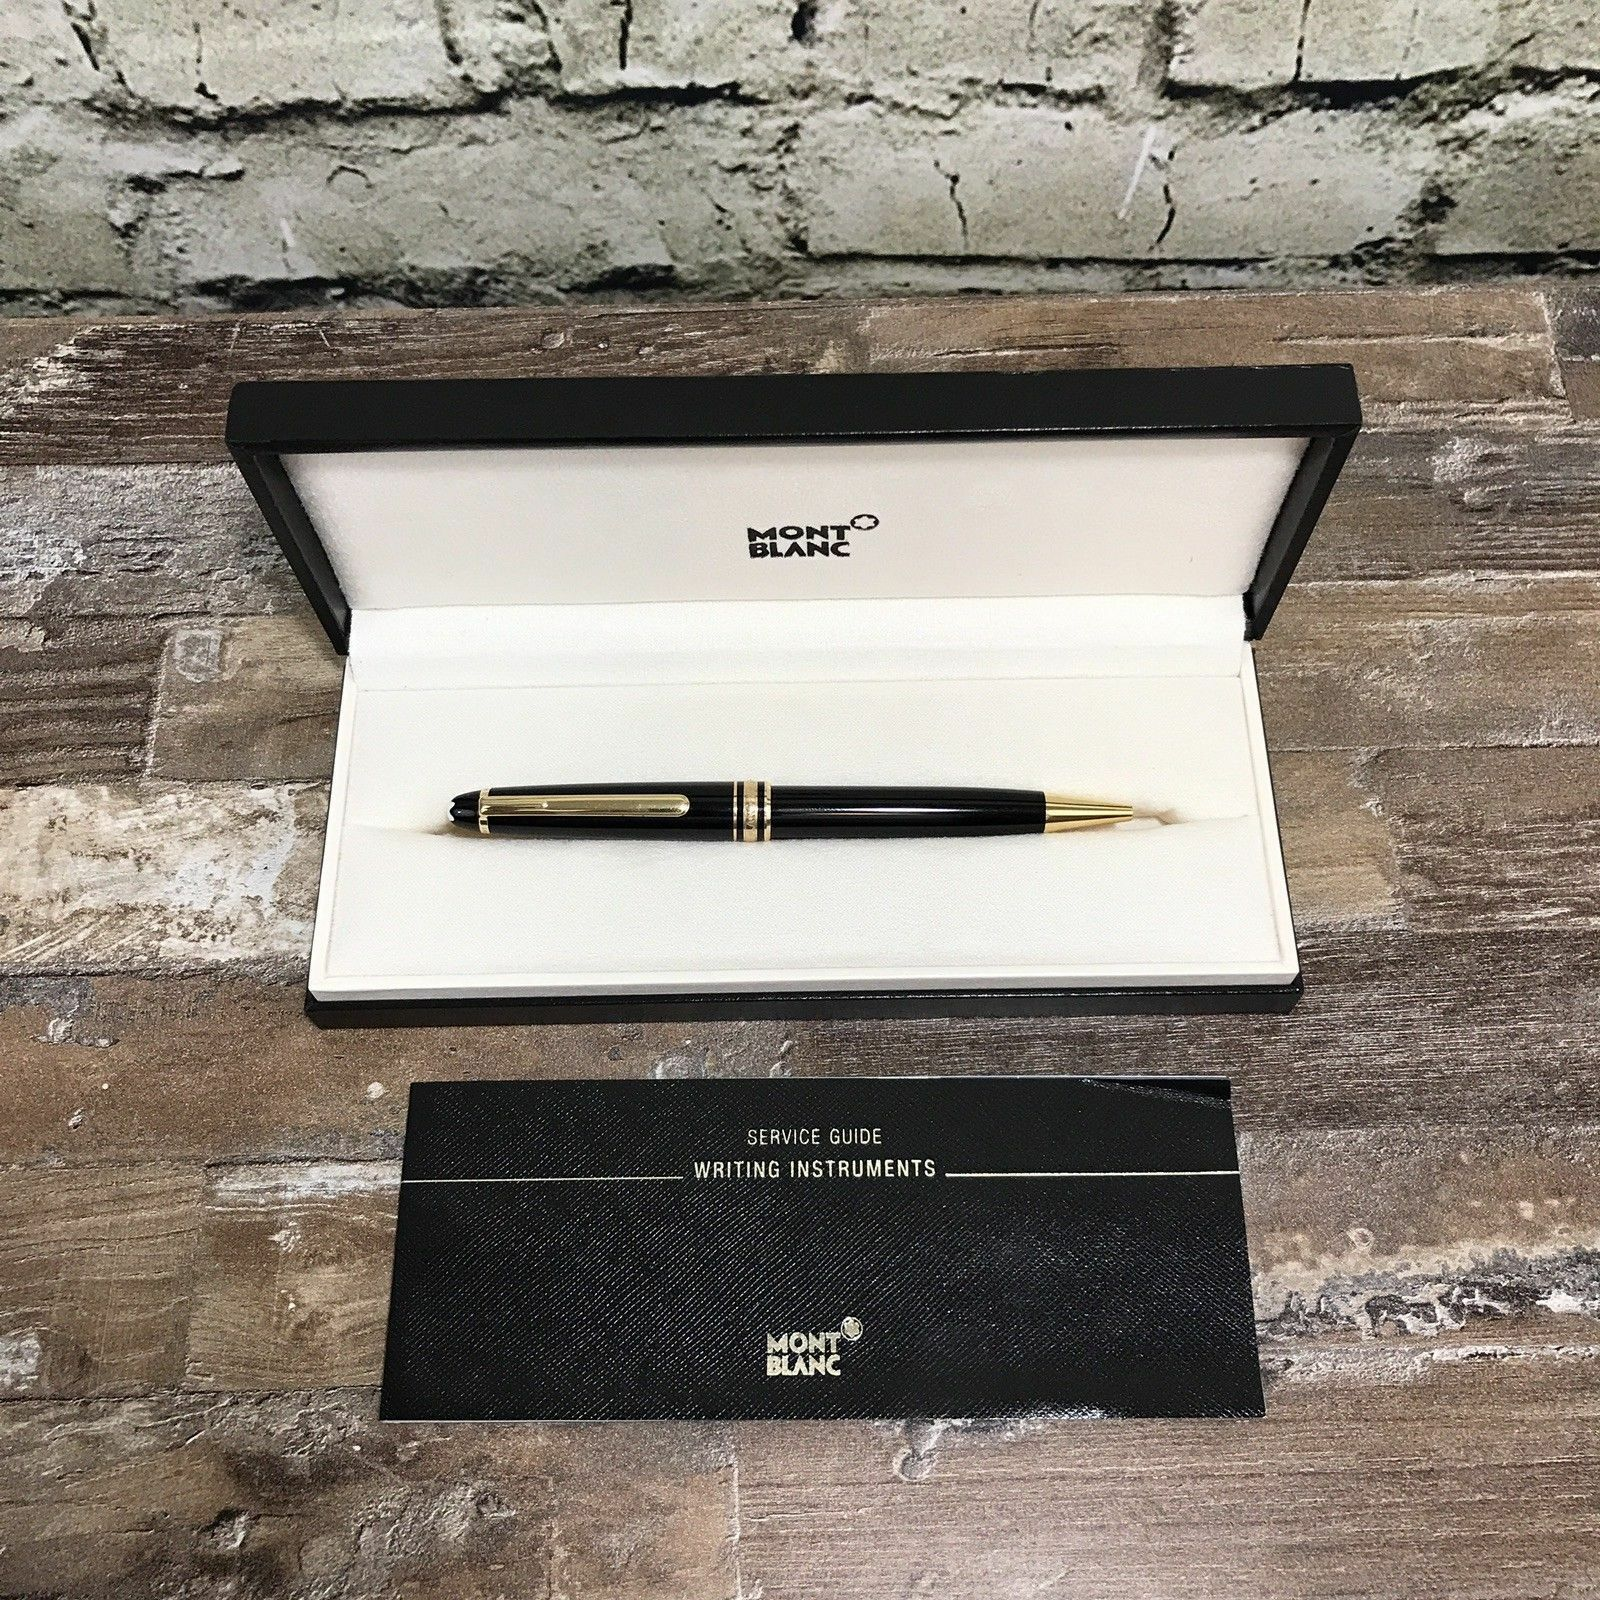 Montblanc Meisterstuck together with Ballpoint Pens 29826 besides 232139916759 in addition 232139916759 additionally 361390500673. on 10883 meisterstueck classique ballpoint pen